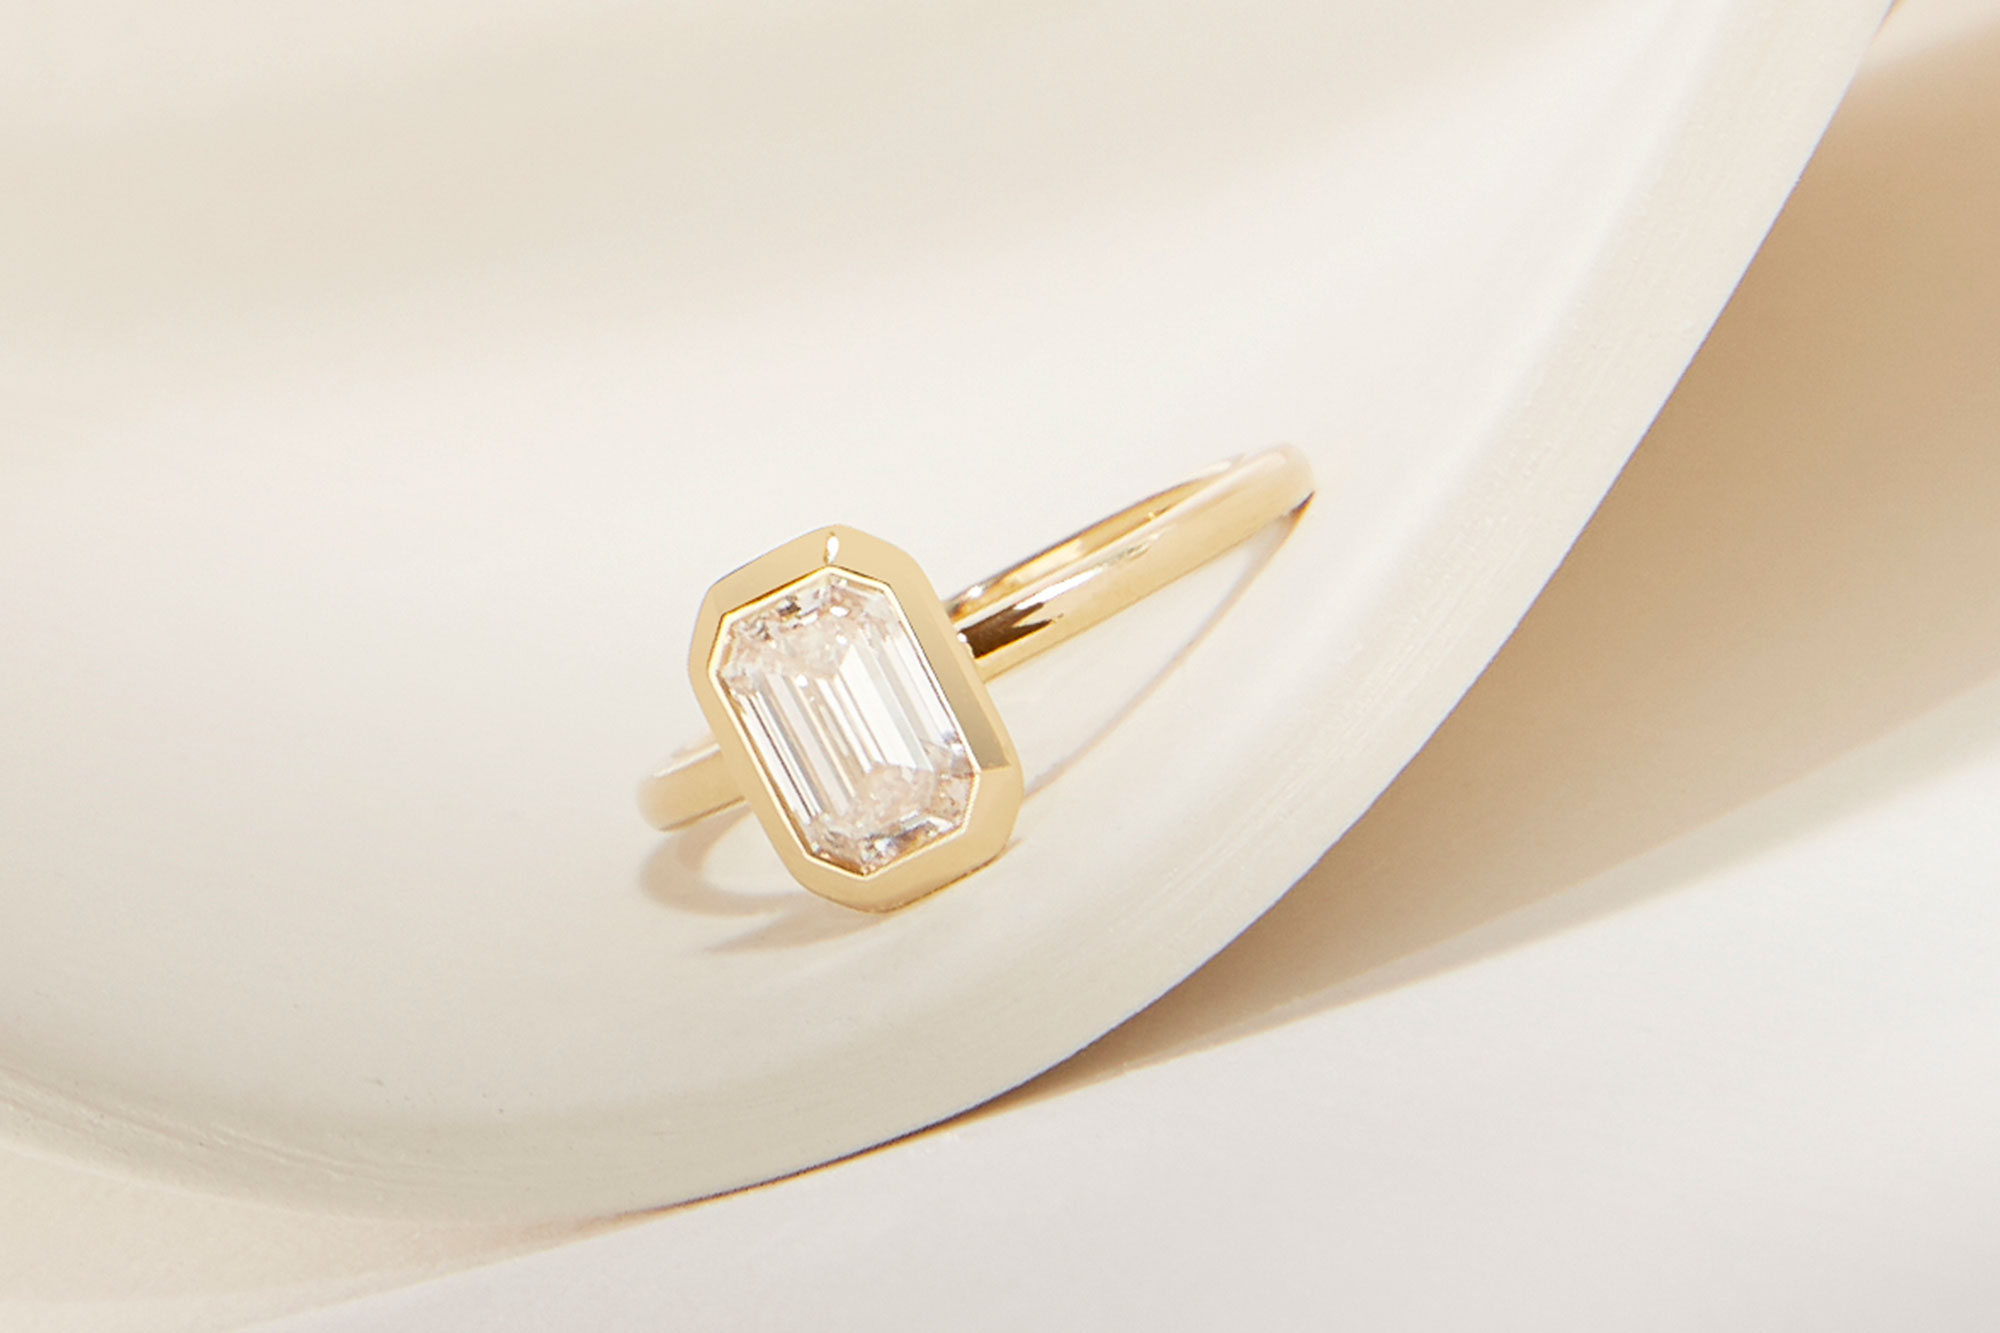 The emerald signature bezel engagement ring with yellow gold band